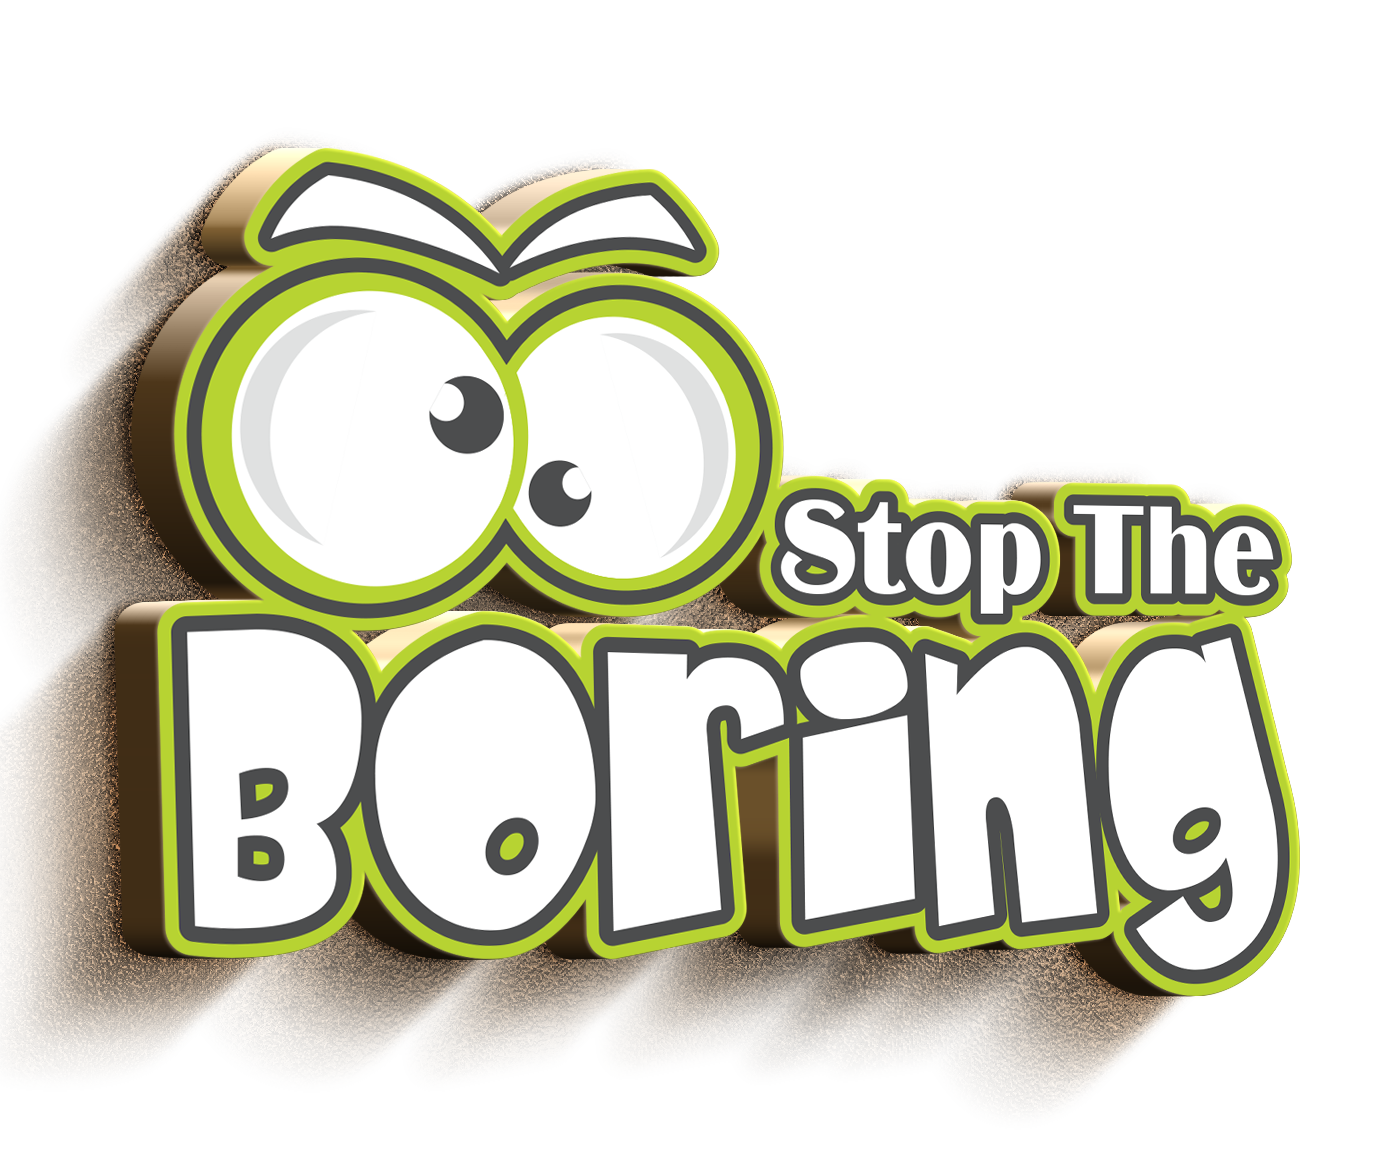 Stop The Boring